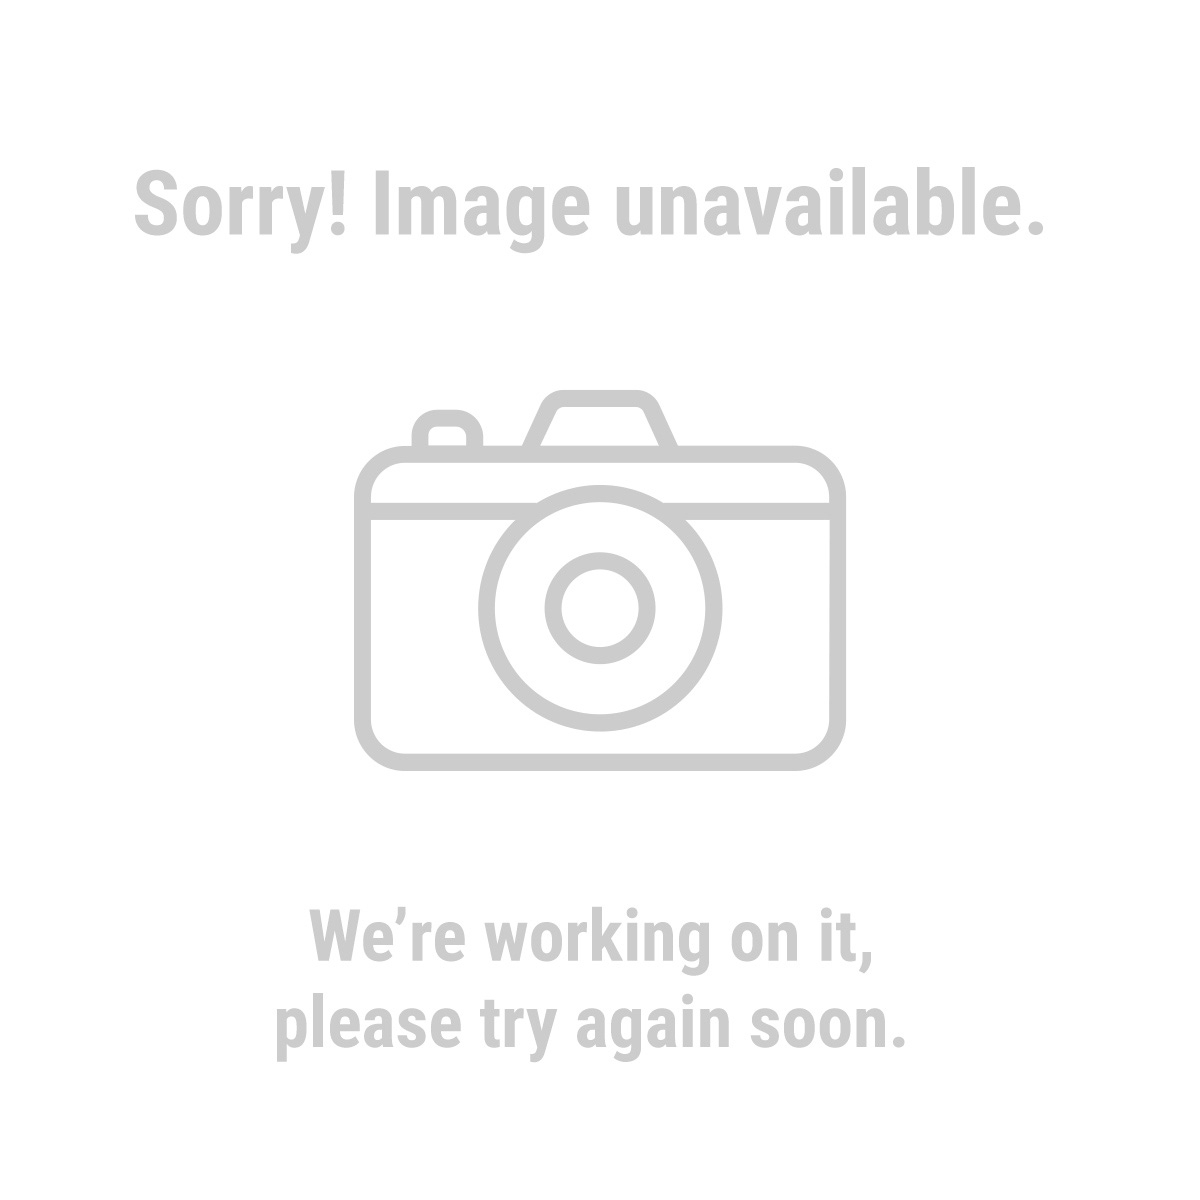 HFT 61860 25 ft. x 14 Gauge Outdoor Extension Cord